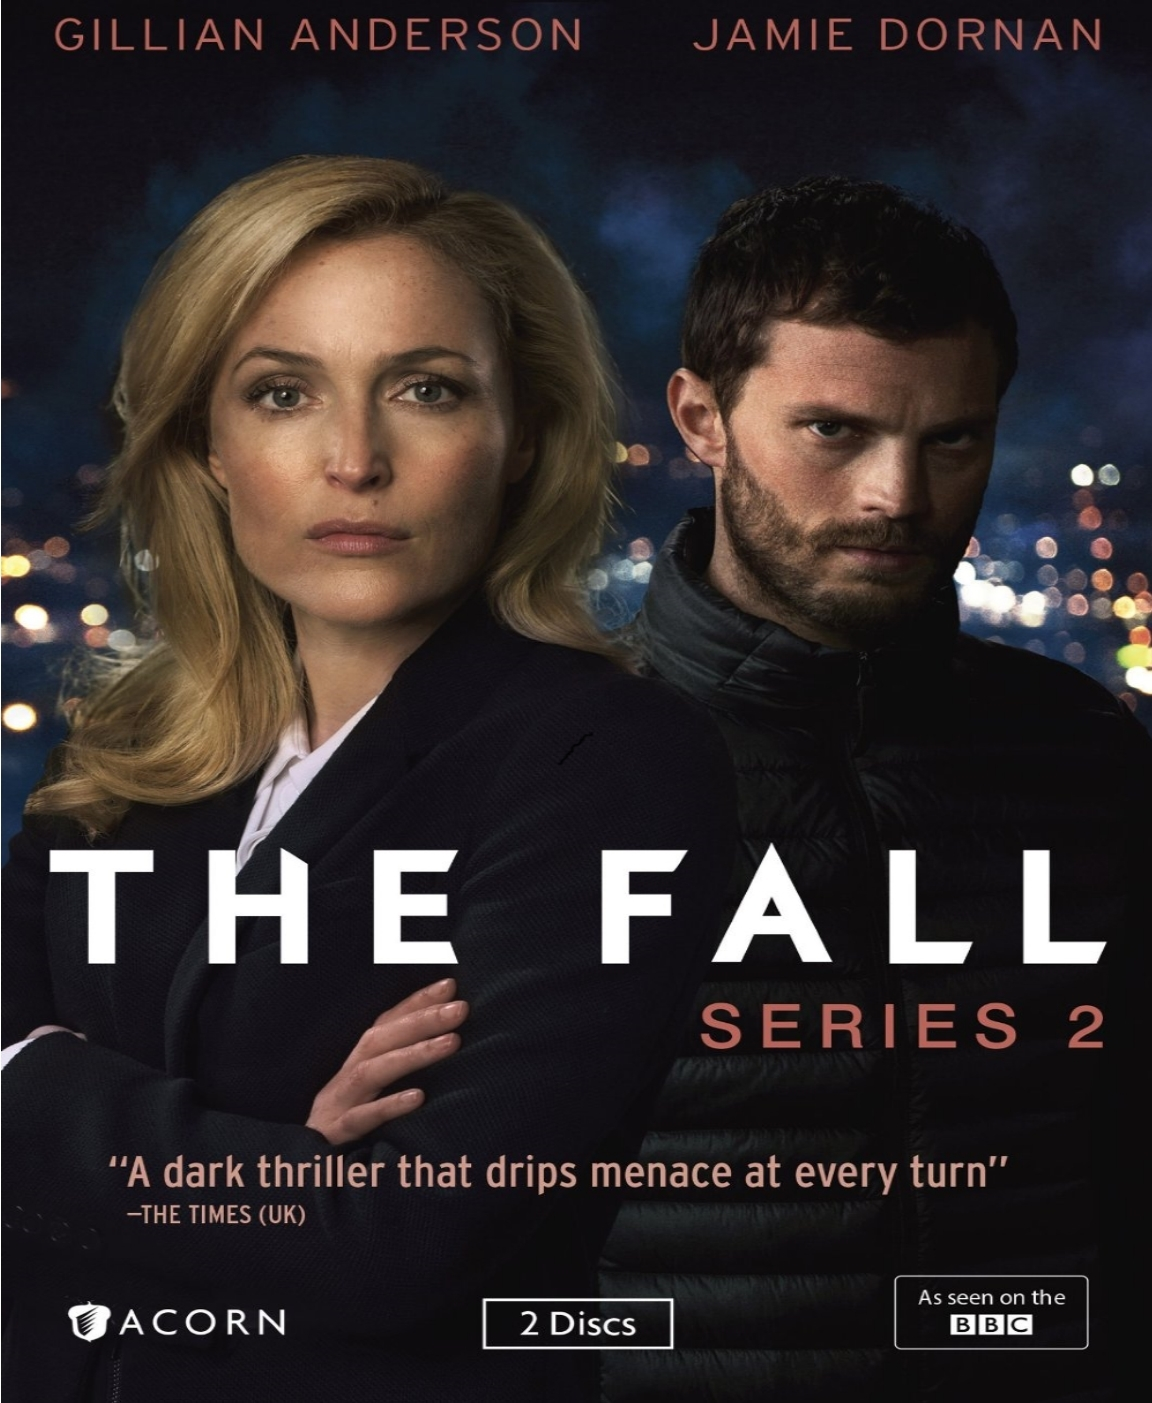 The fall second season series two 2  2 dvd  2016  wide gillian anderson  jamie dornan